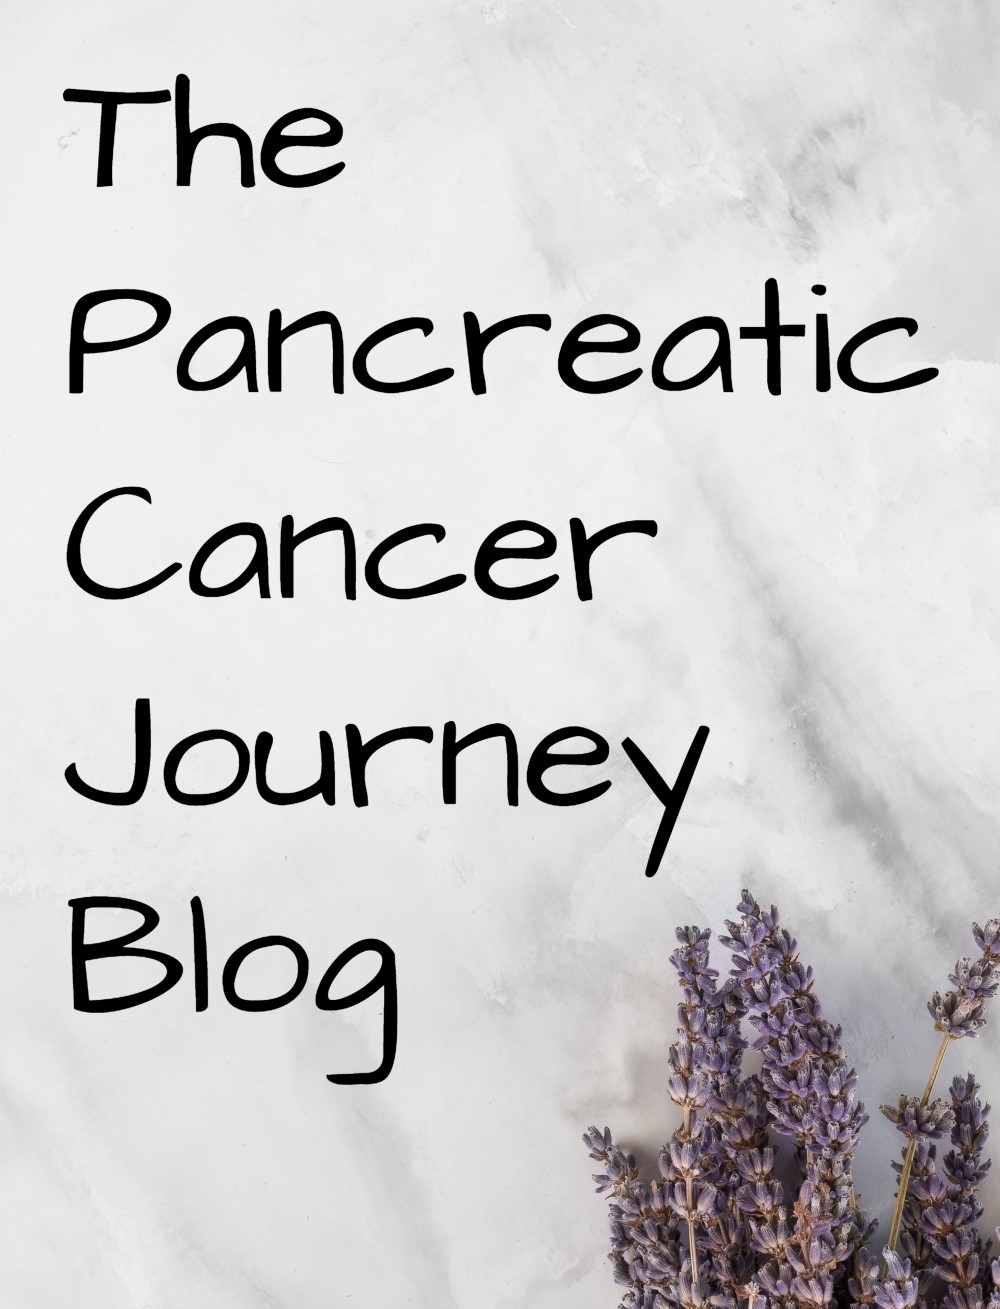 Our Pancreatic Cancer Story